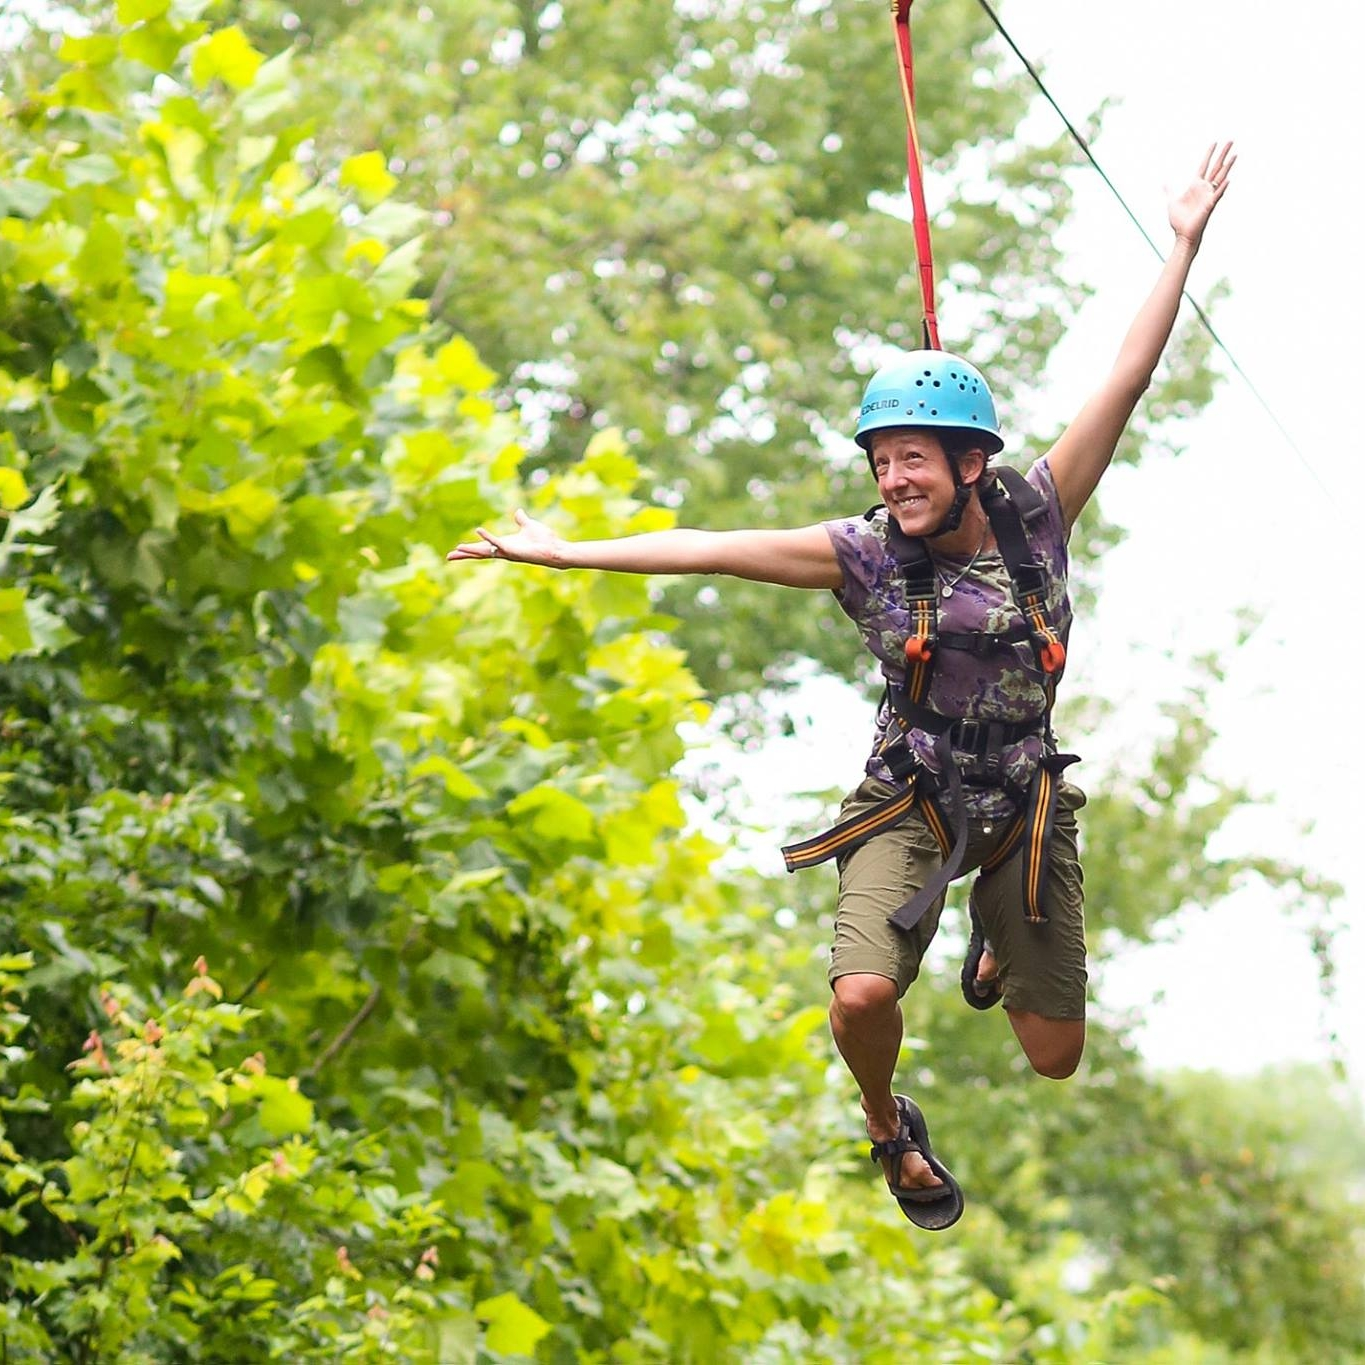 Activities - Teambuilding and Challenge Course Activities like Large Group Initiatives and Low Ropes.Adventure Activities like Climbing, Mountain Biking, Kayaking, and Caving.Activities just for Fun & Relaxation like Tubing and Hiking.